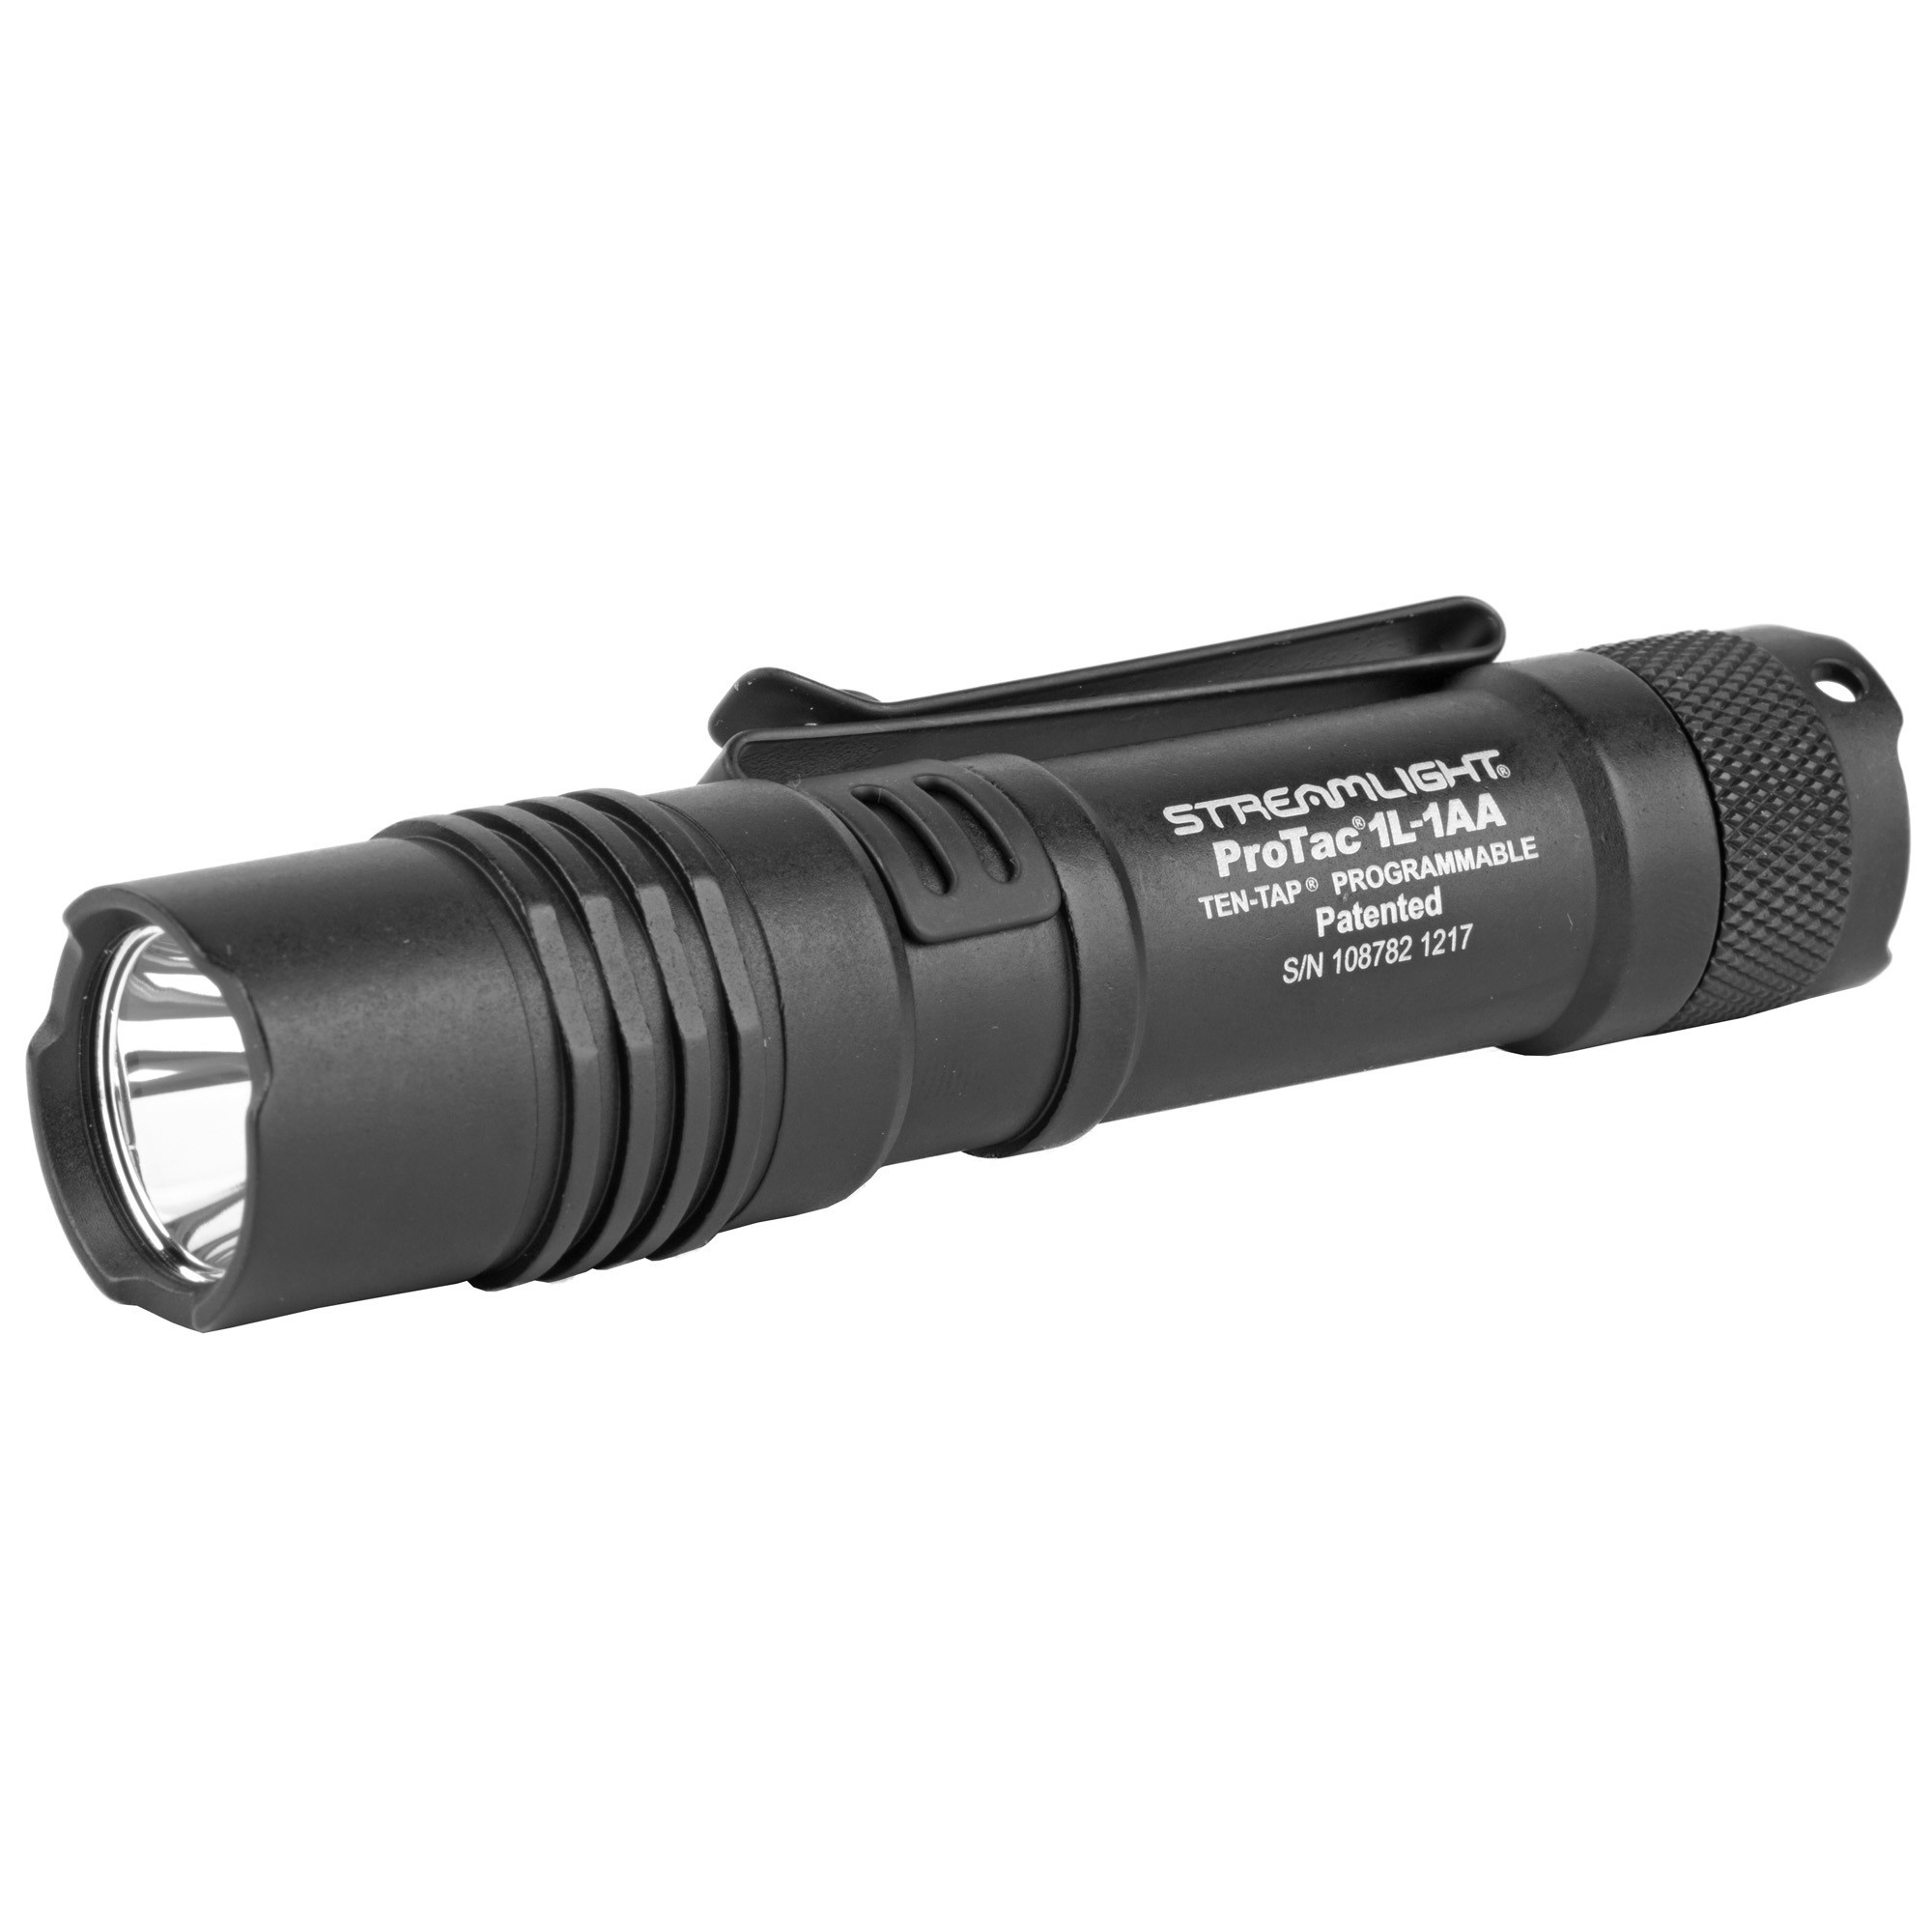 Streamlight ProTac 1L-1AA 350 Lumens